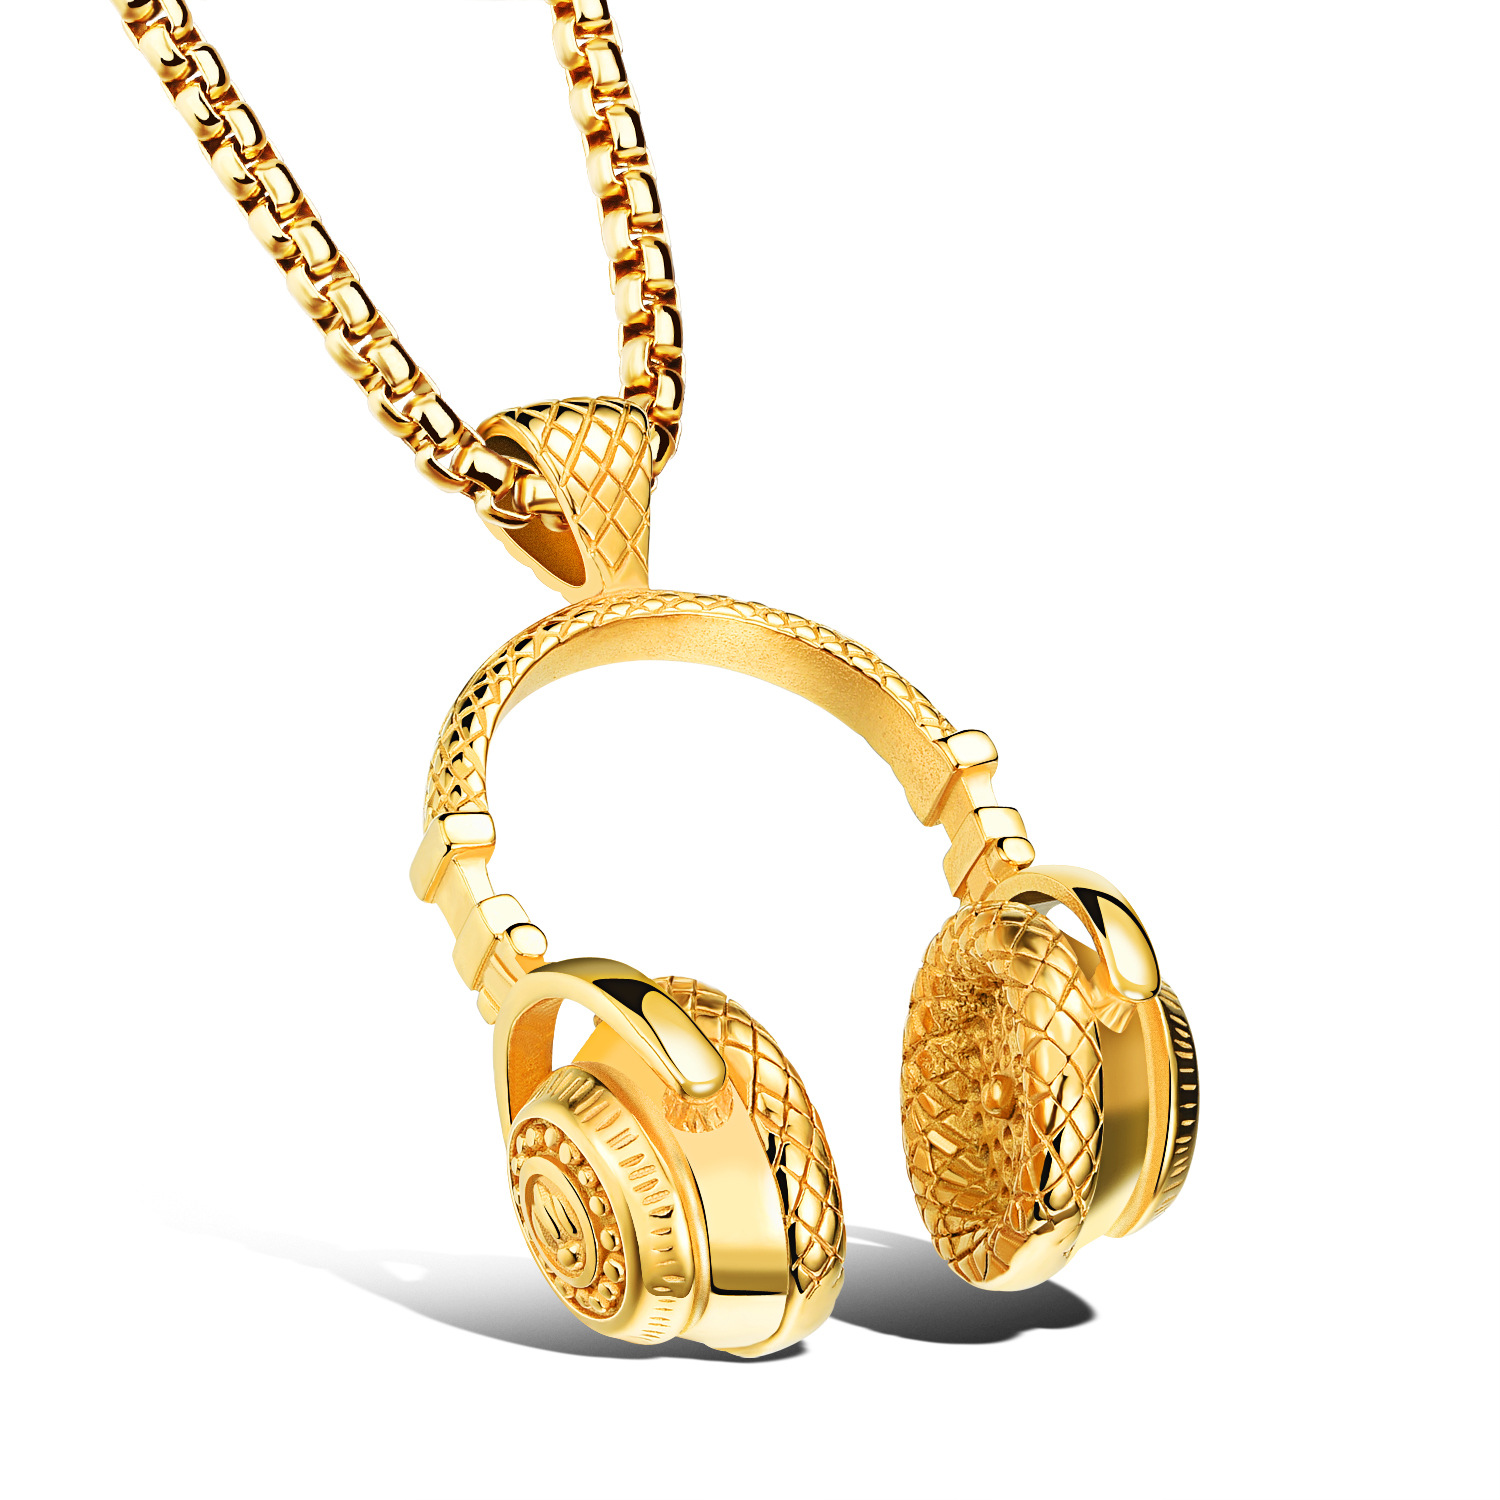 Hip hop jewelry men necklace stainless steel music headphone hip hop jewelry men necklace stainless steel music headphone pendant necklaces 2018 fashion cool gifts mens jewellery collier in pendant necklaces from mozeypictures Image collections